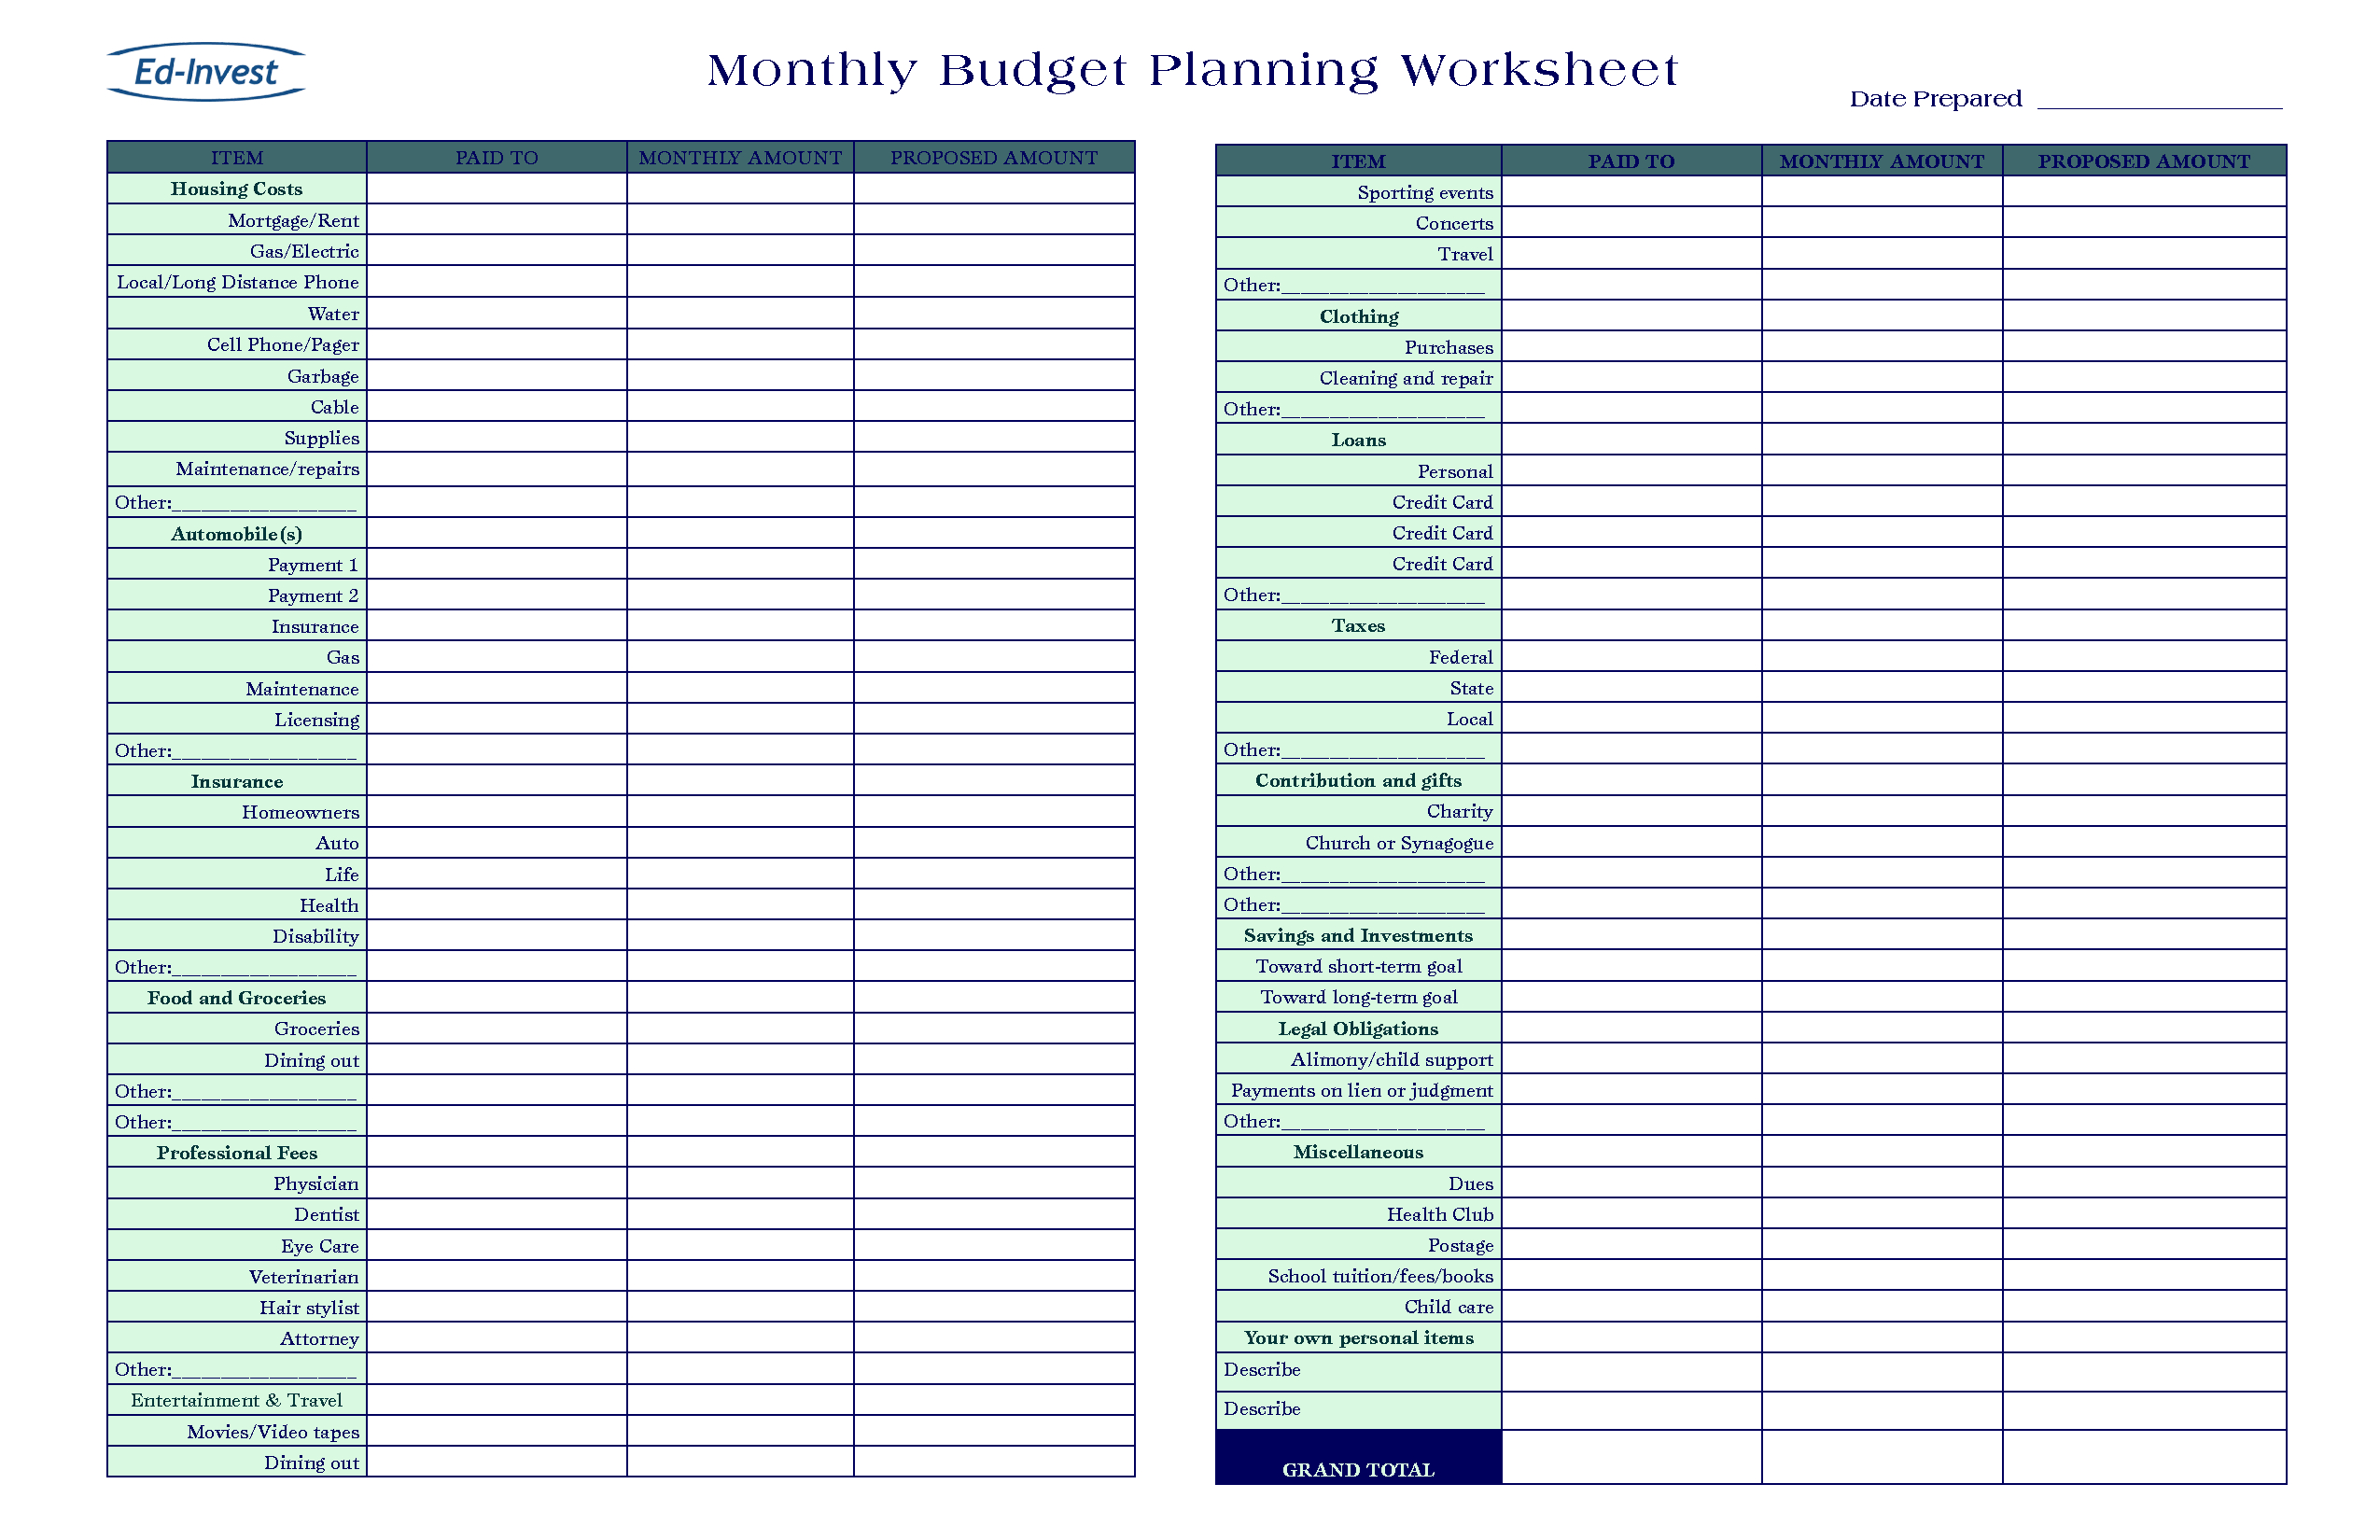 Financial Management Spreadsheet For Financial Worksheet Template Or Personal Finance Spreadsheet Uk With